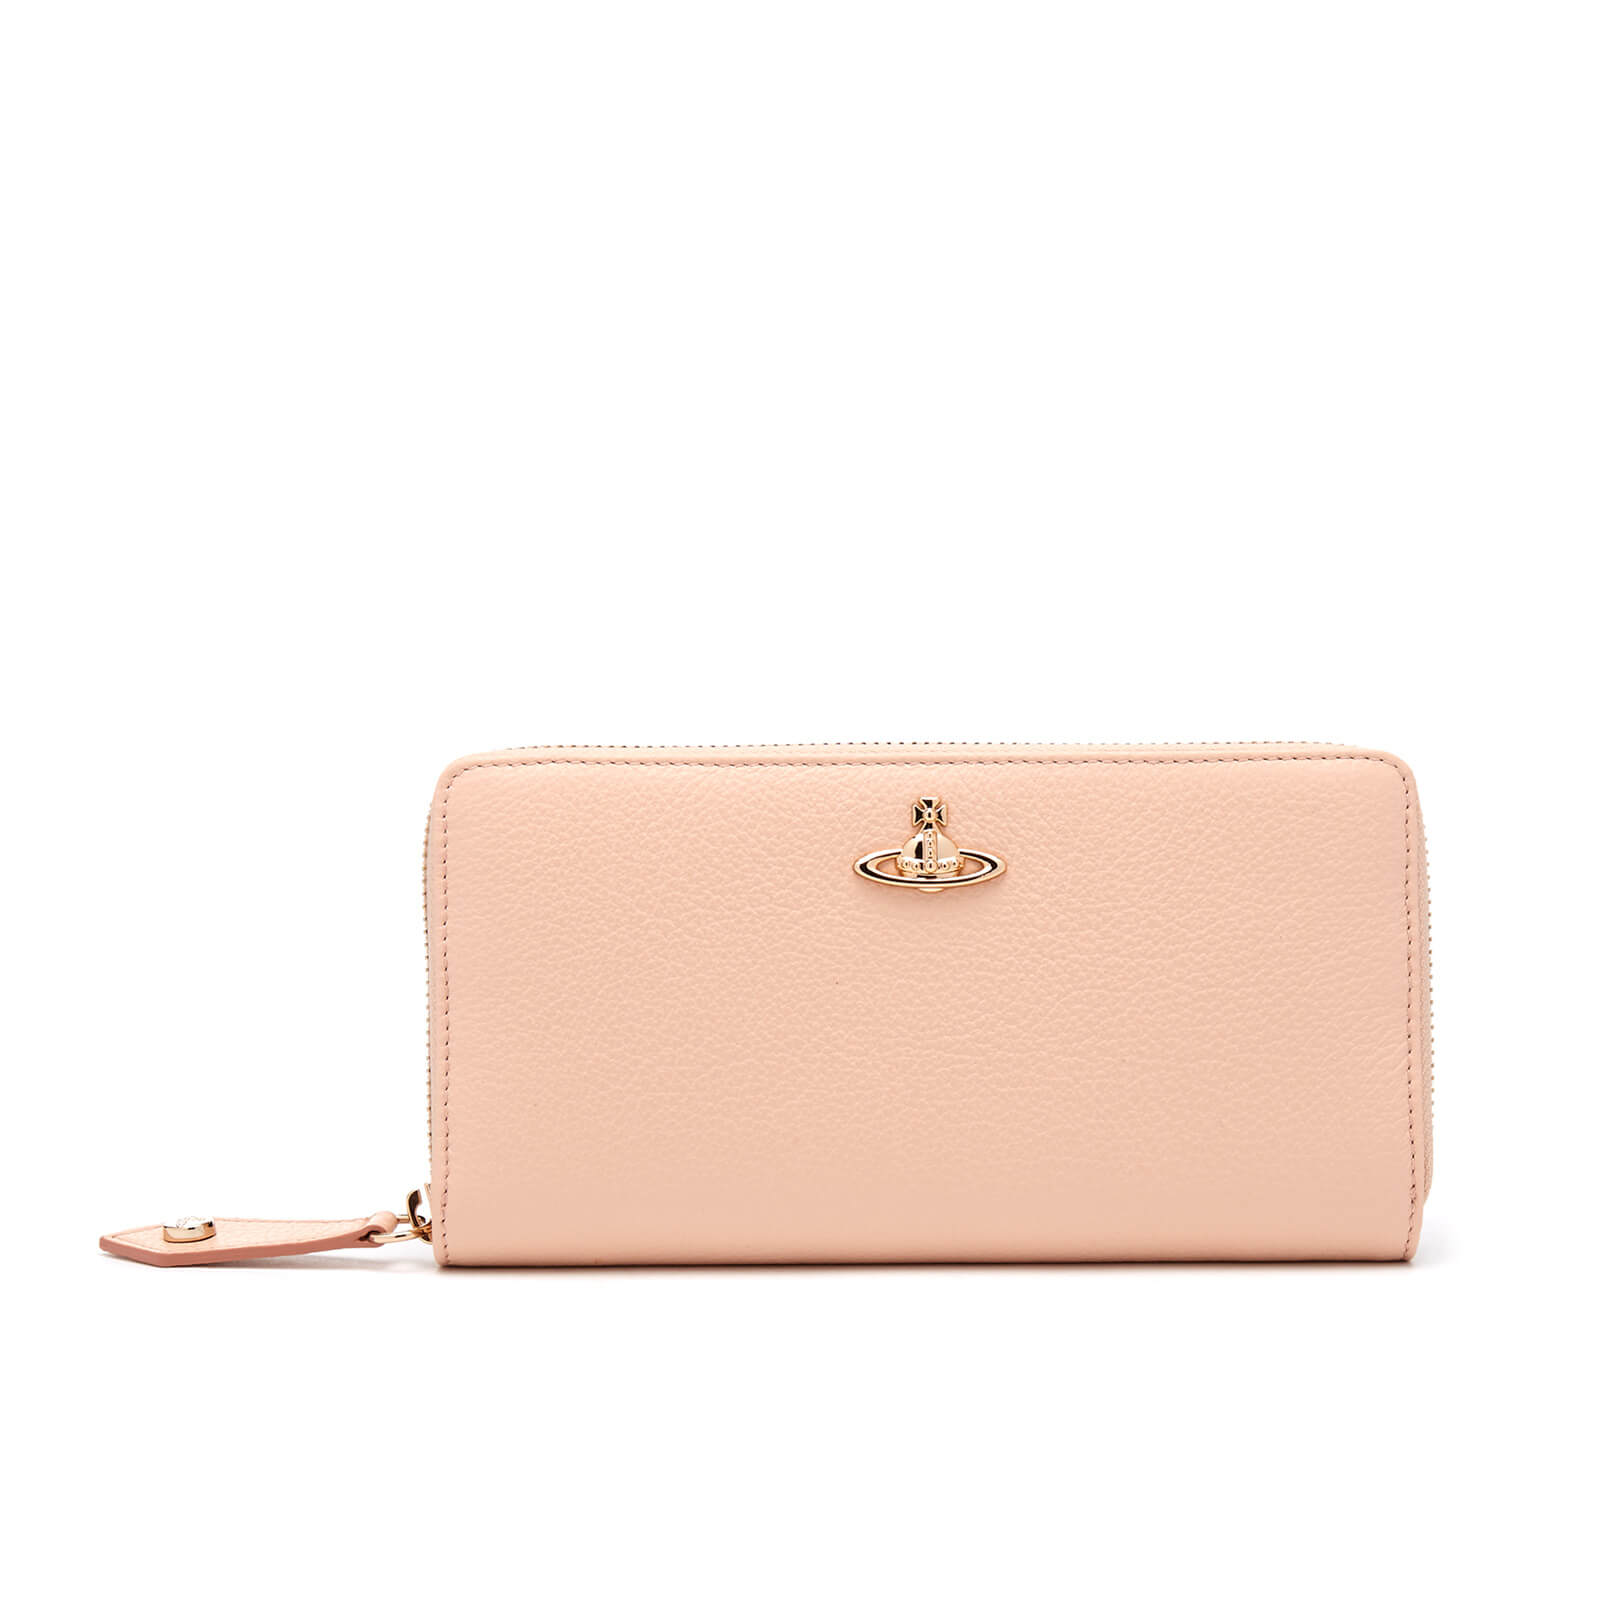 c999d092d3 Vivienne Westwood Women's Balmoral Grain Leather Zip Around Wallet - Pink -  Free UK Delivery over £50